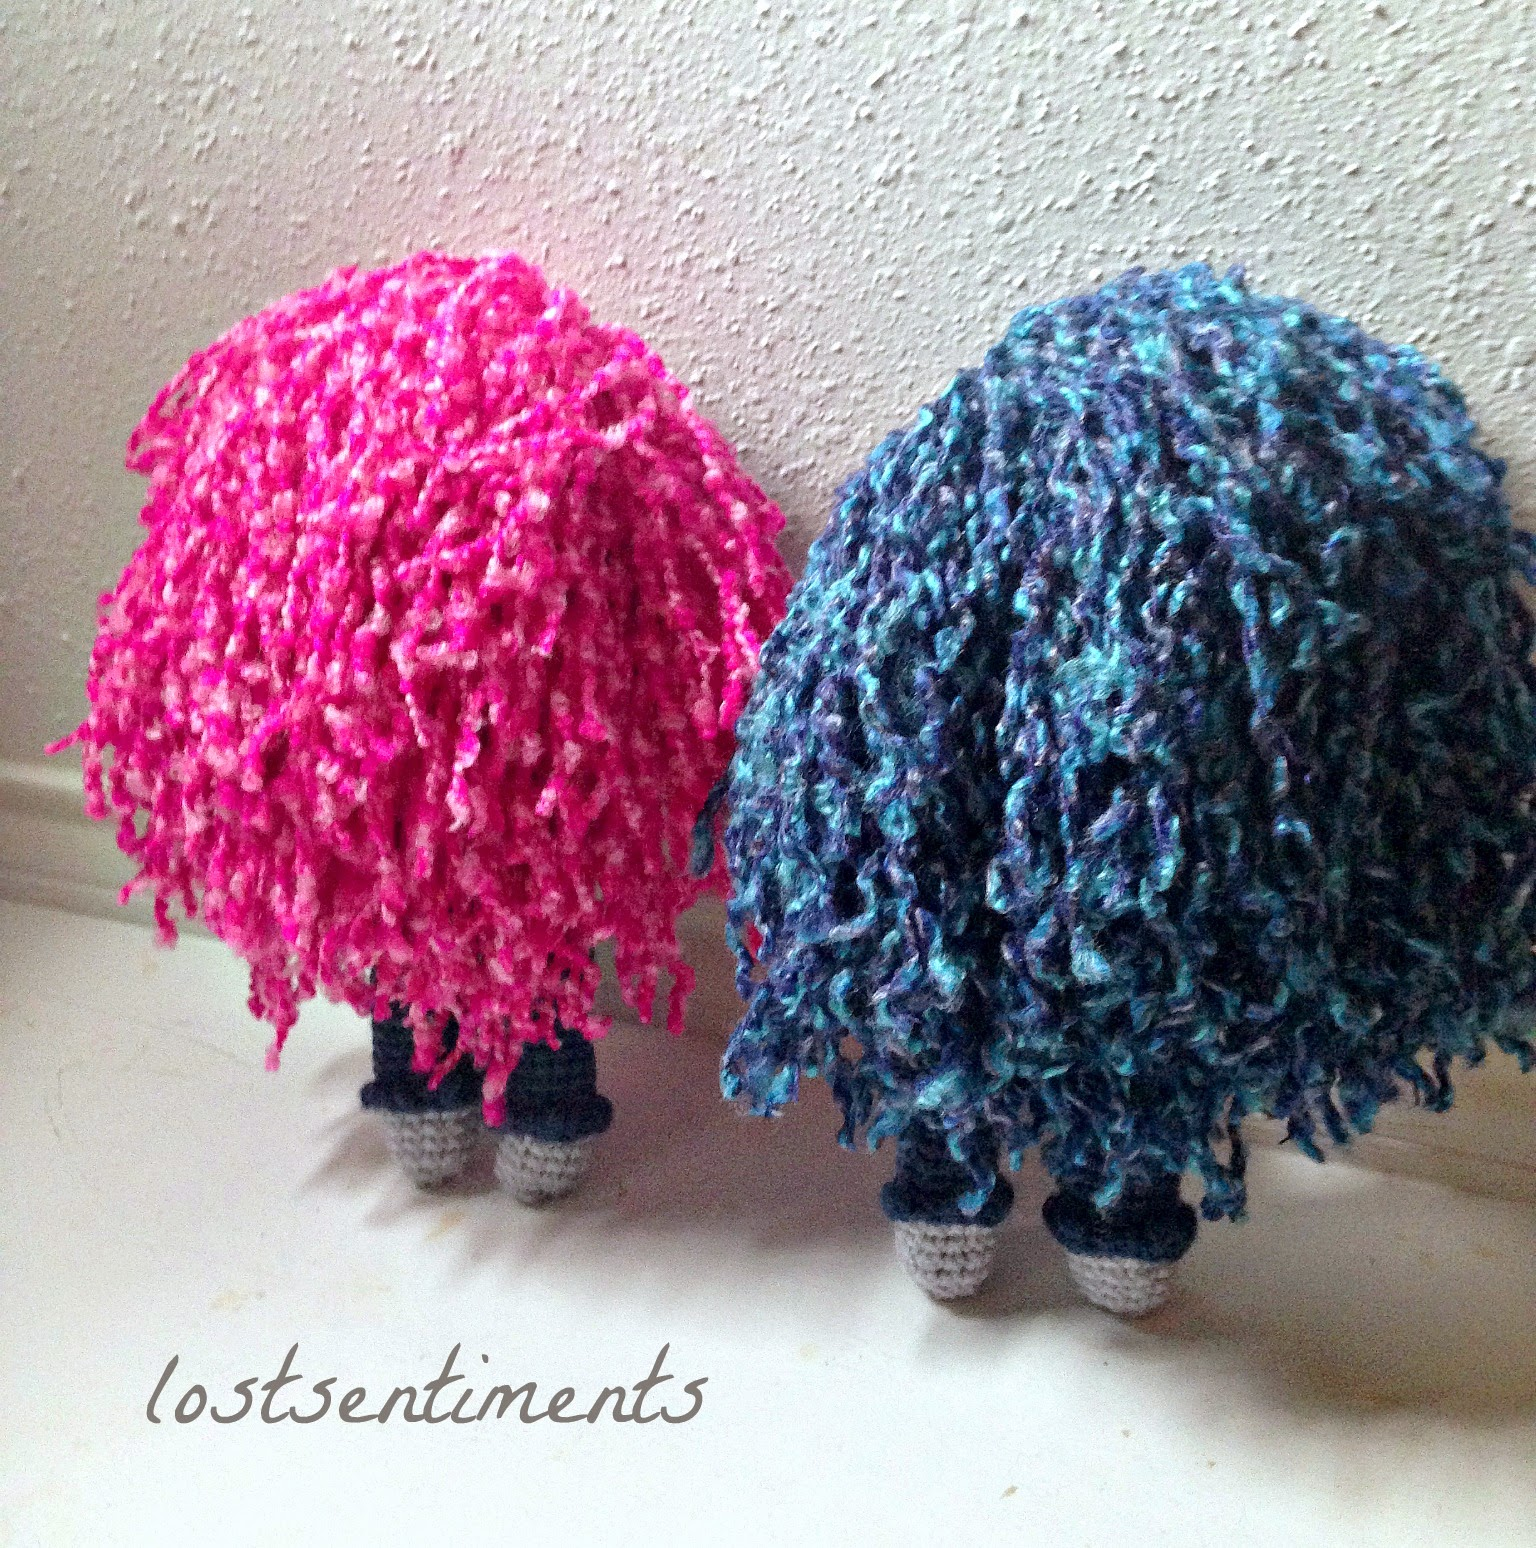 Crochet Pattern Large Doll : lostsentiments: Free Amigurumi Pattern for Body of Large Doll